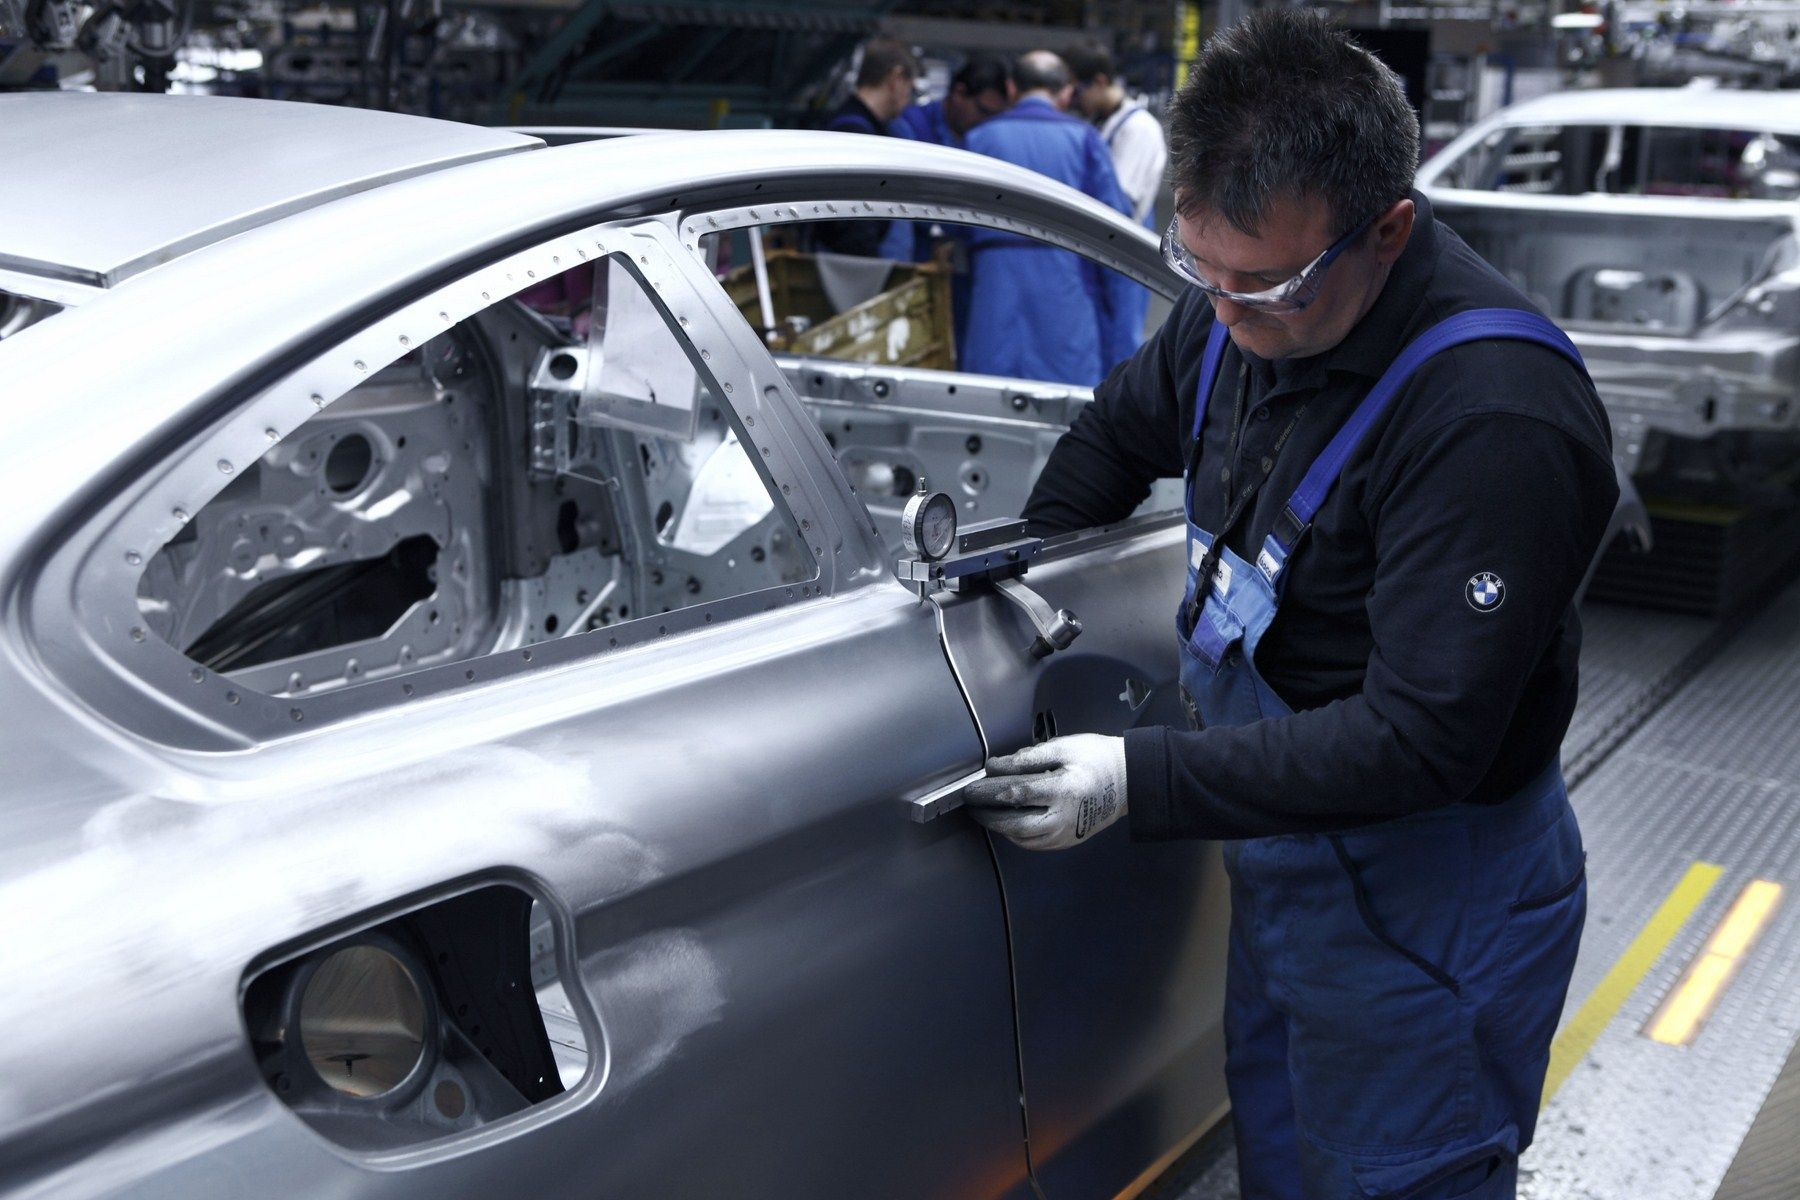 Missing Bosch part slows BMW production - http://www.bmwblog.com/2017/05/29/missing-bosch-part-slows-bmw-production/